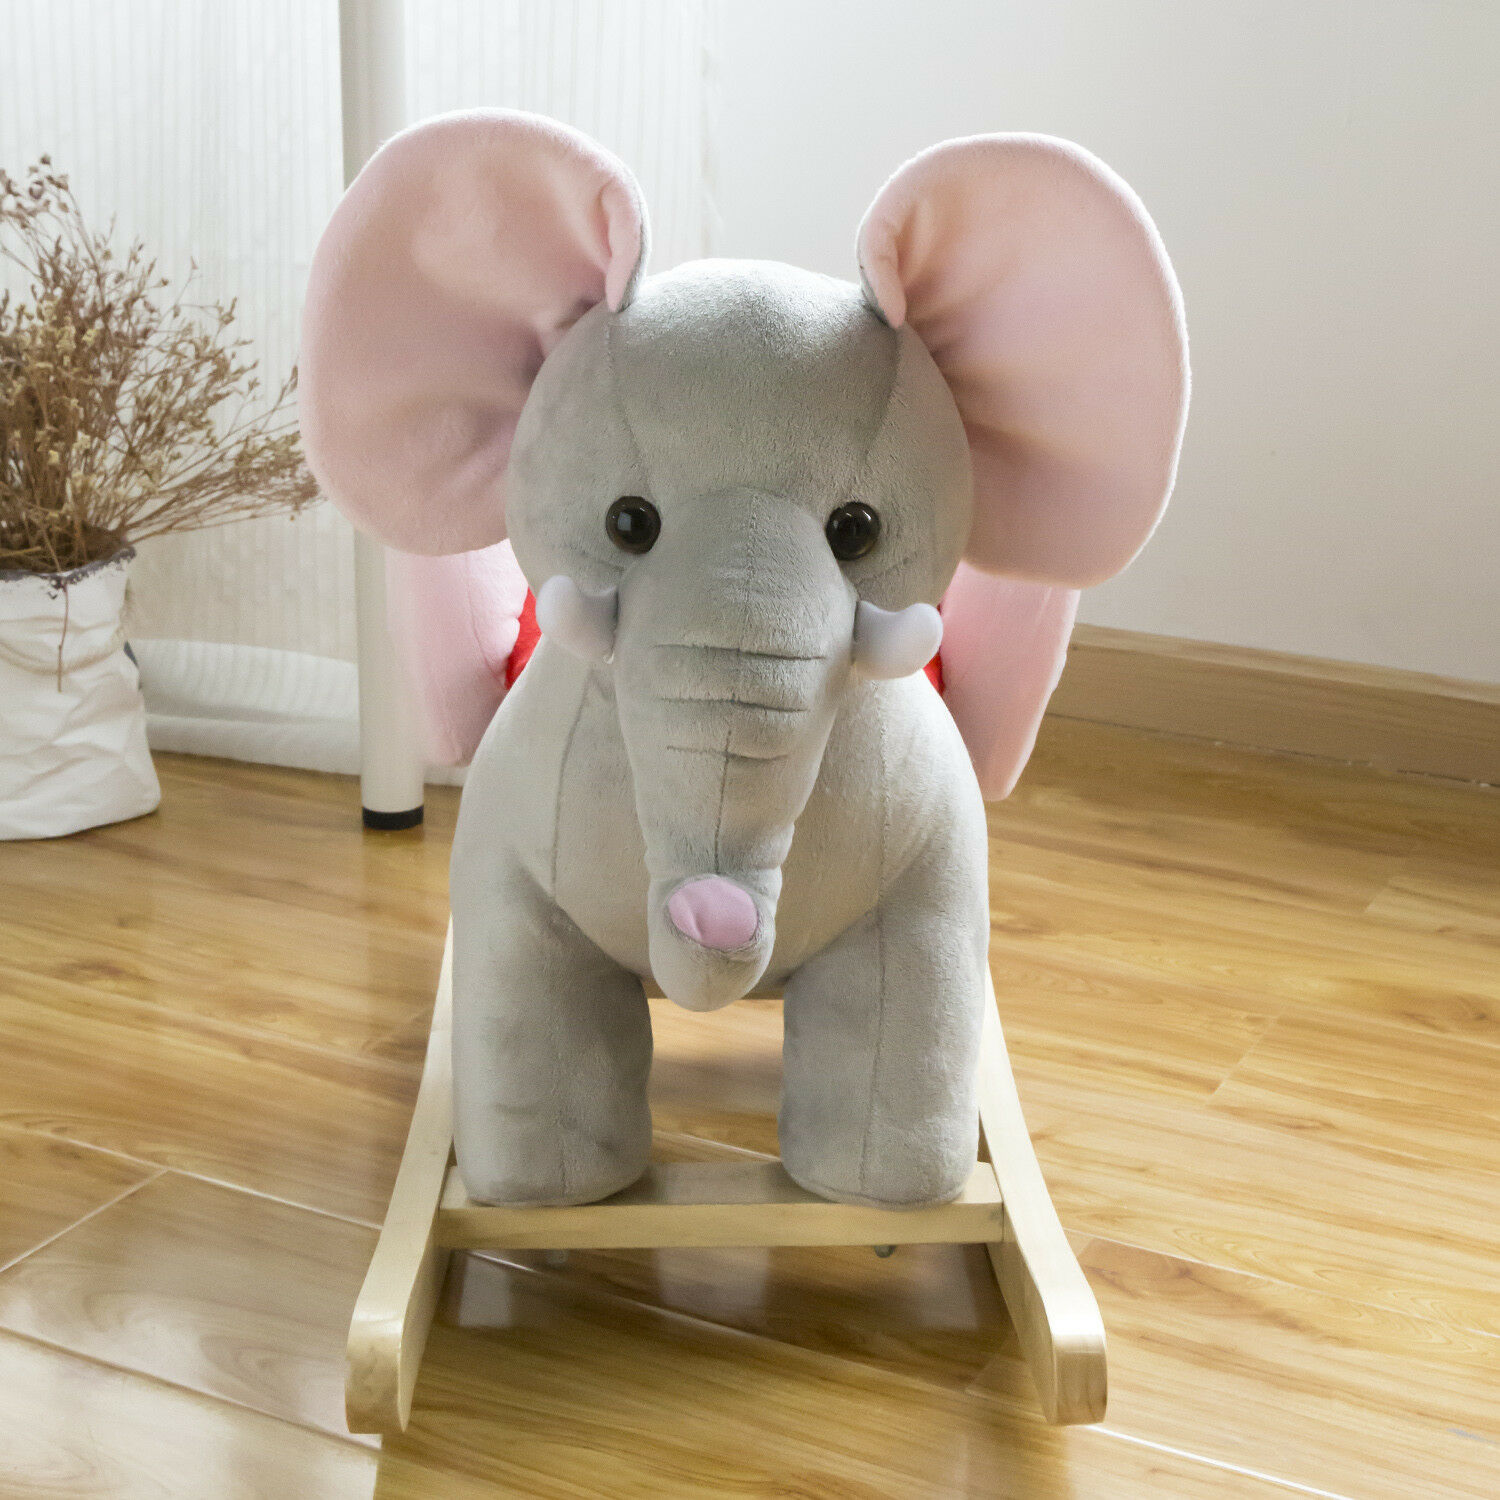 Rocking Horses Rocking Horse Elephant Kids Plush Ride On Toy Toddler Riding Rocker Sound Toys Hobbies